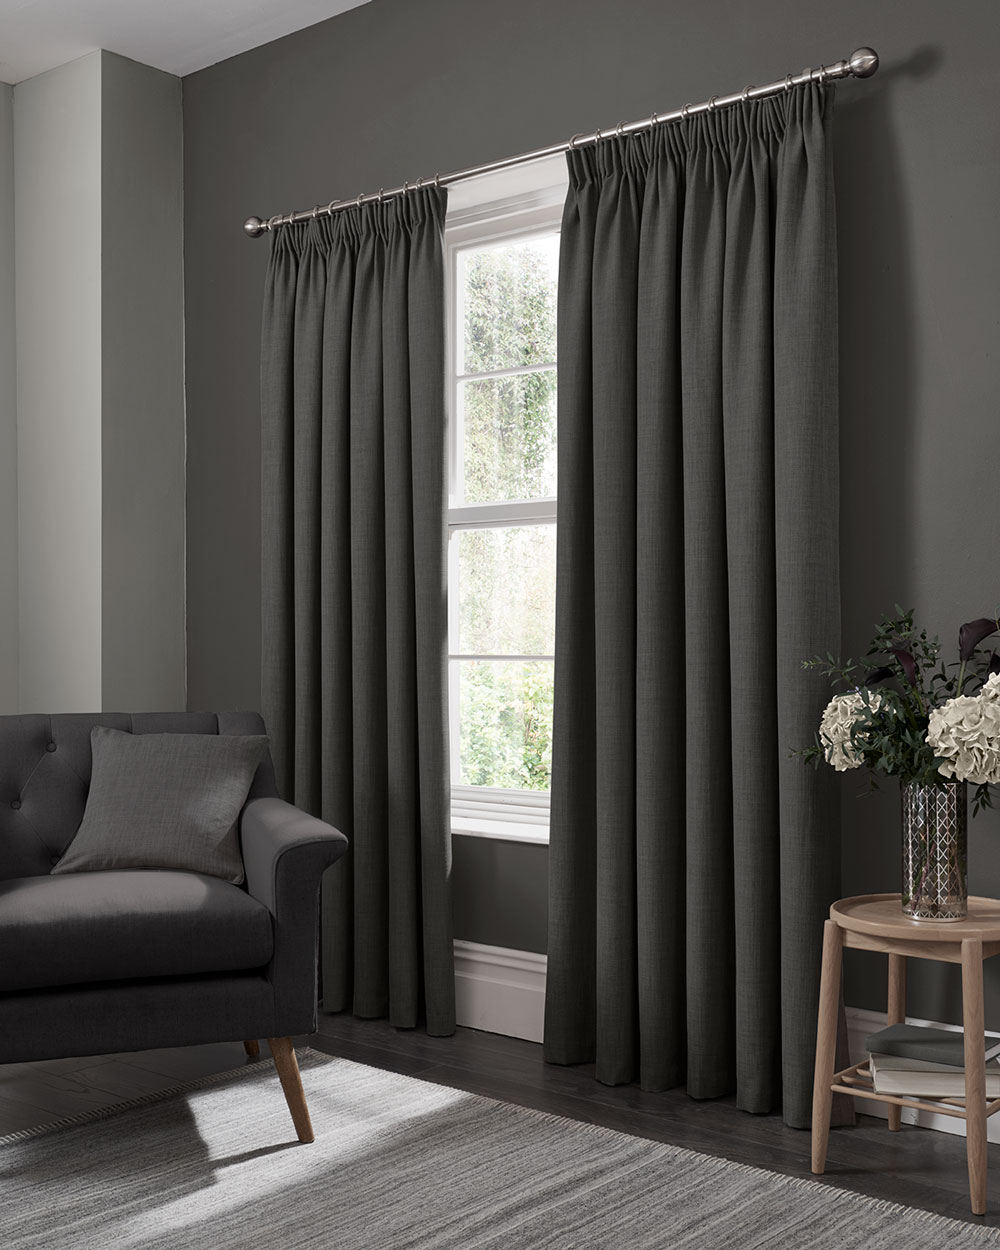 Studio G Elba Pencil Pleat Curtains Steel Ready Made Curtains - Product code: M1105/04/90X5